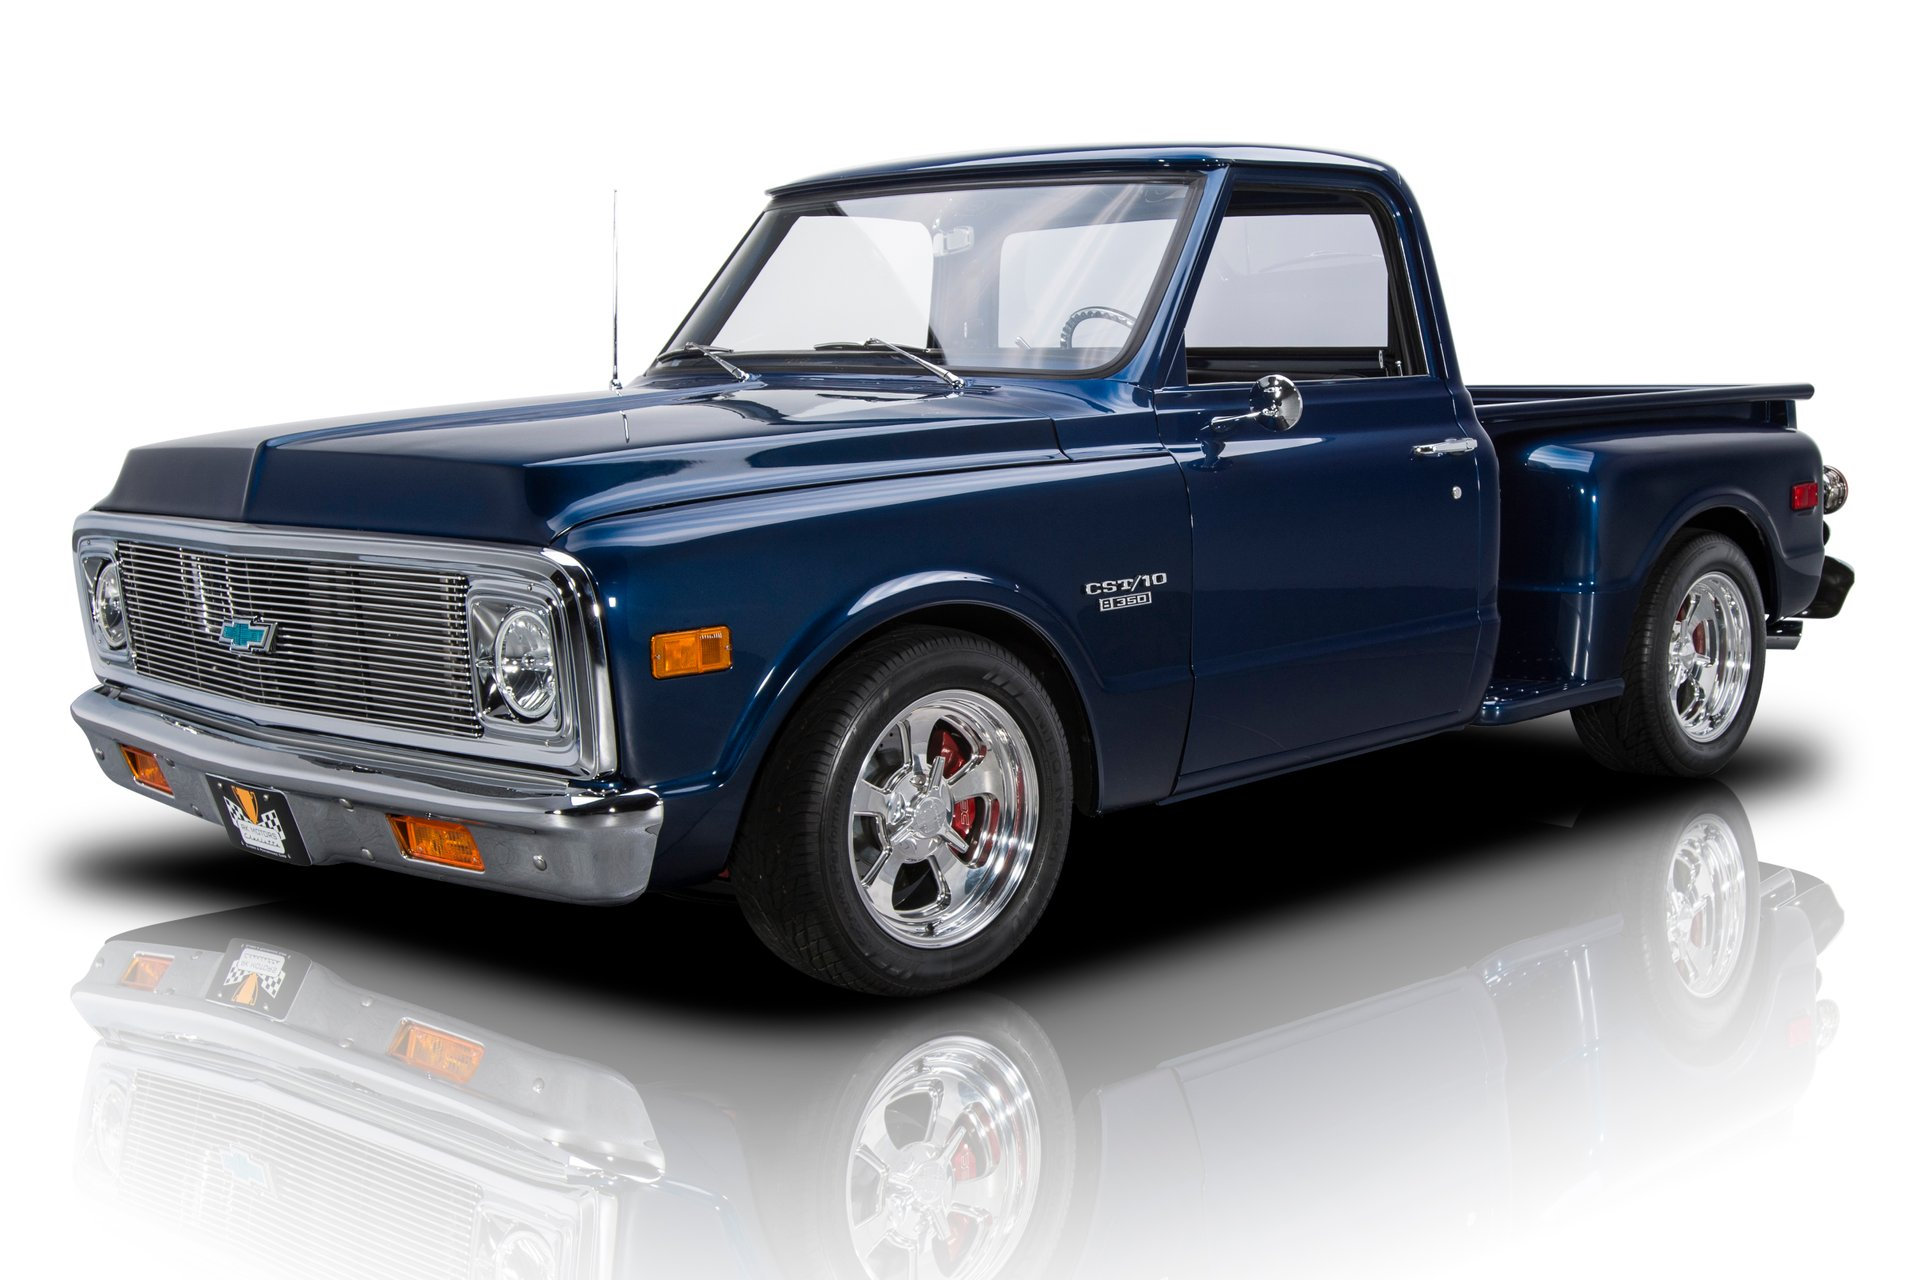 1969 Chevrolet C10 RK Motors Classic Cars for Sale